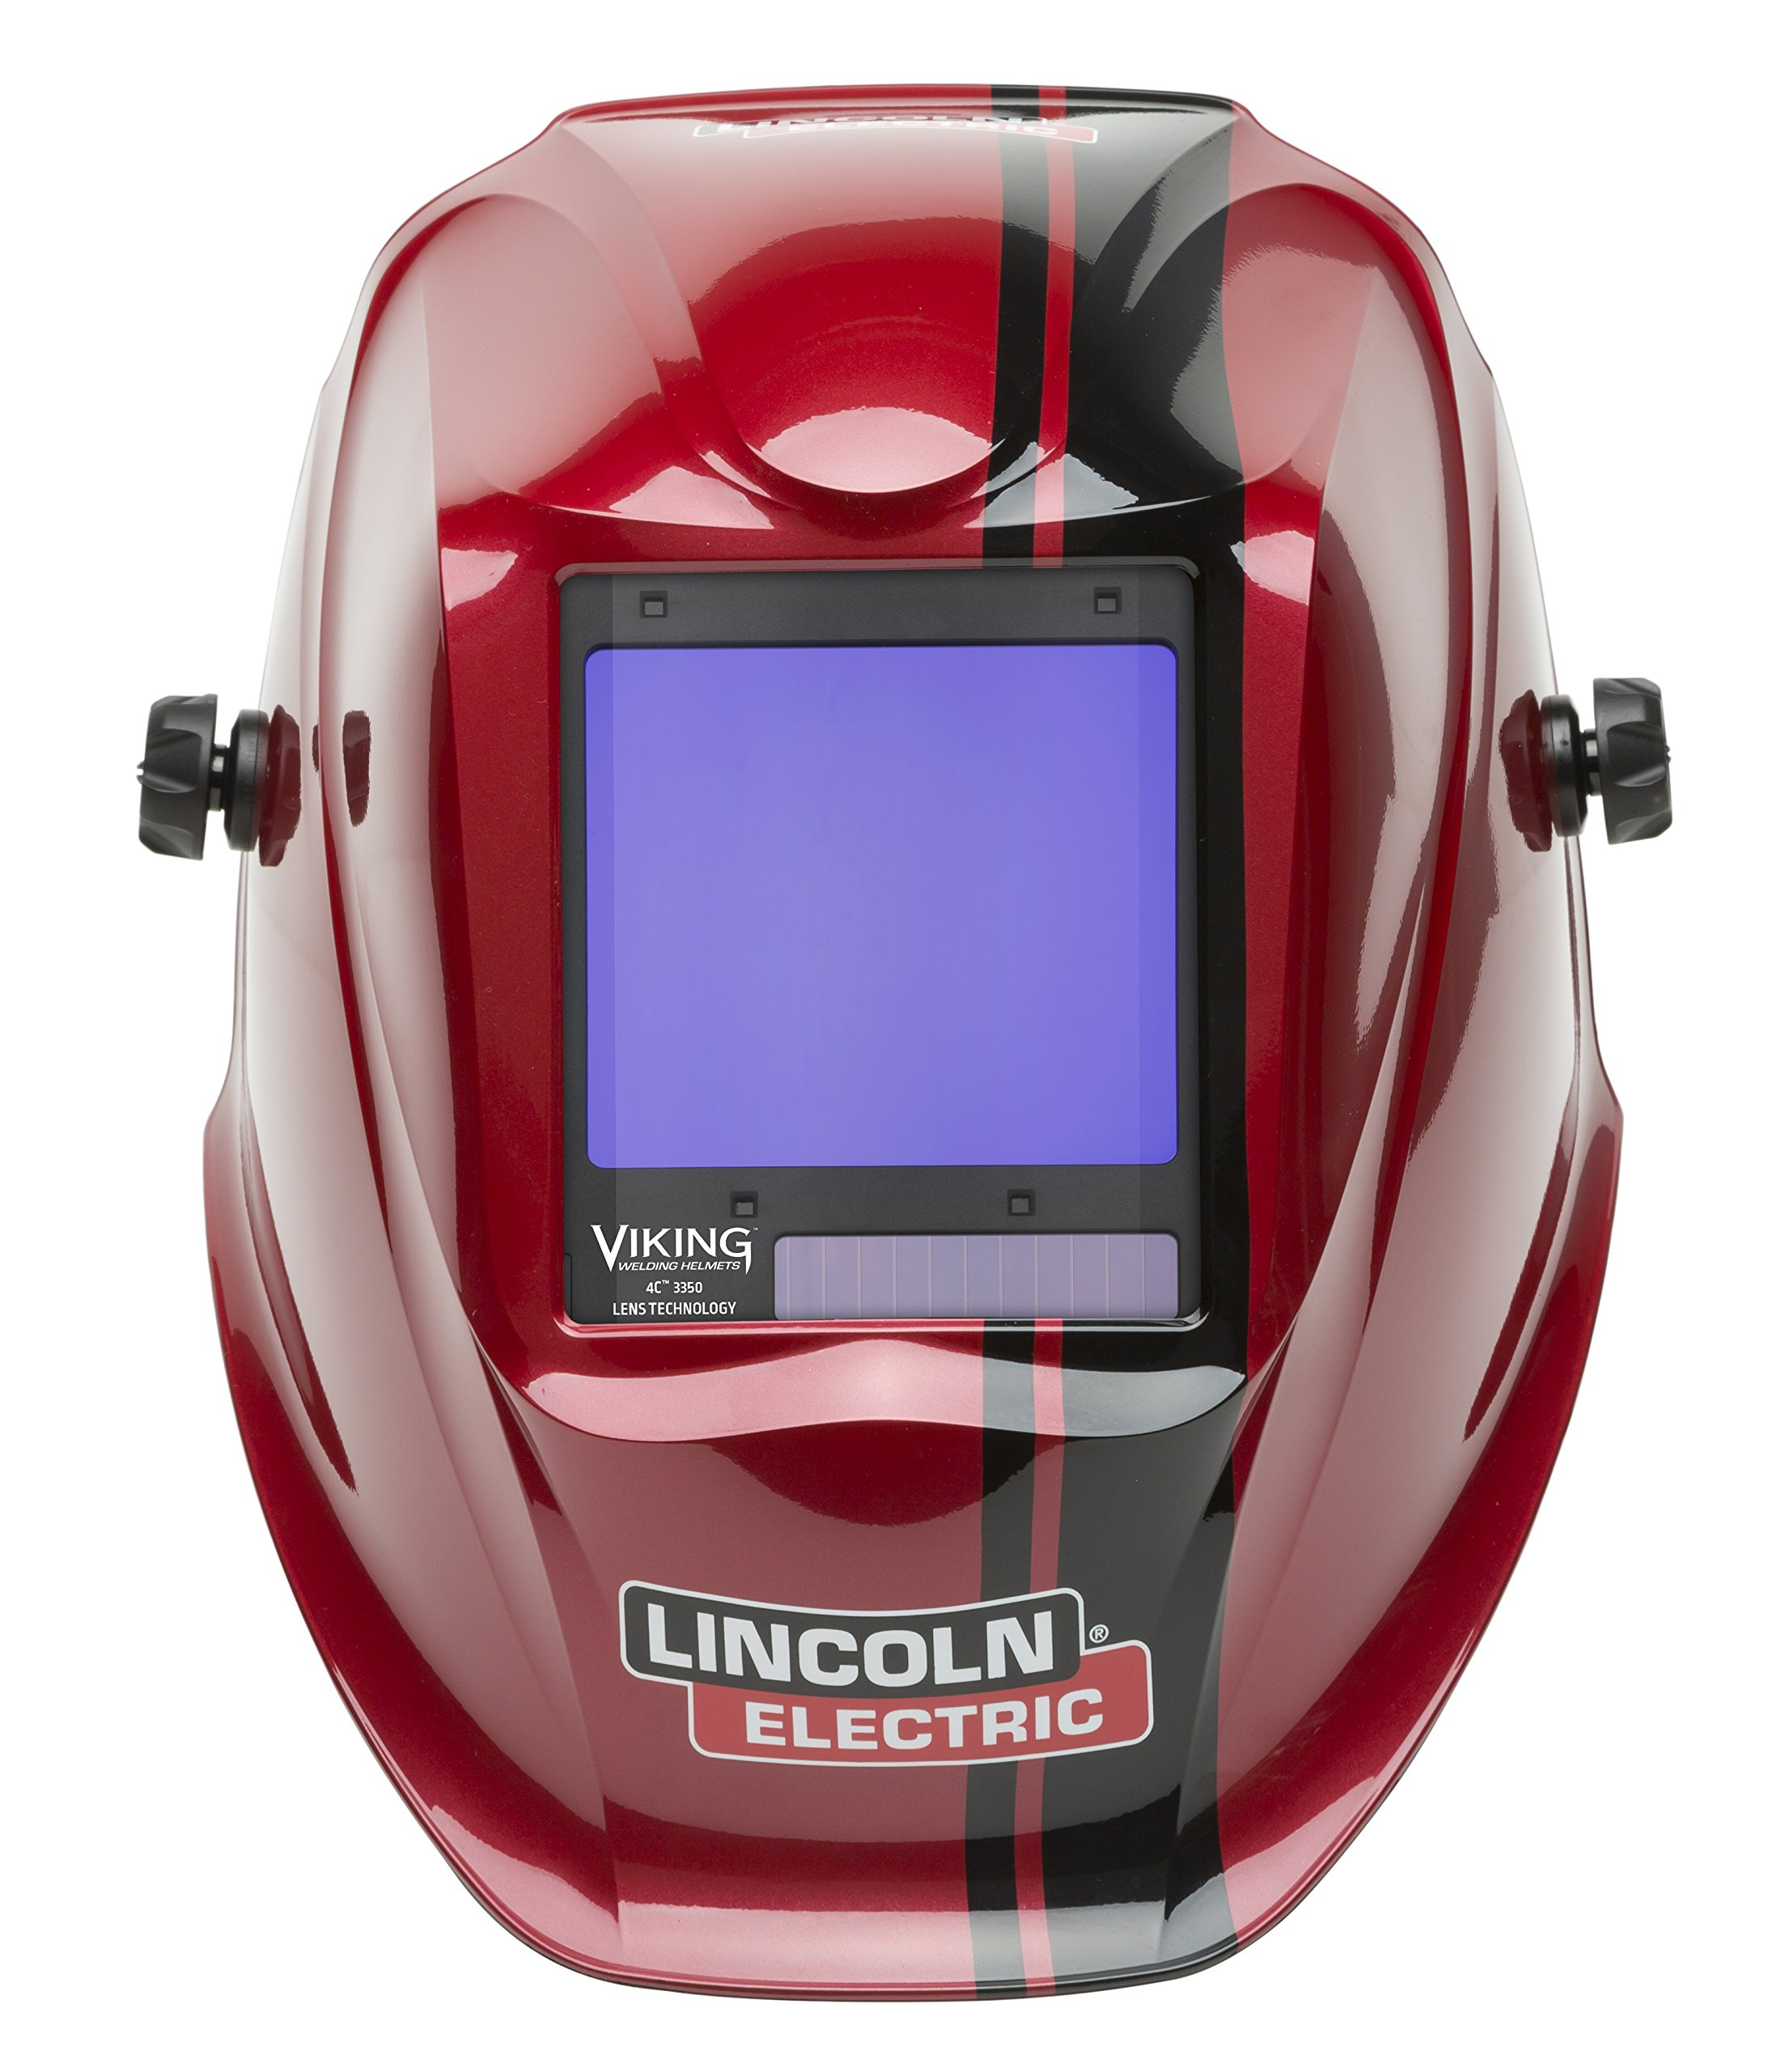 Lincoln Electric VIKING 3350 Code Red Welding Helmet with 4C Lens Technology - K4034-3 by Lincoln Electric (Image #2)